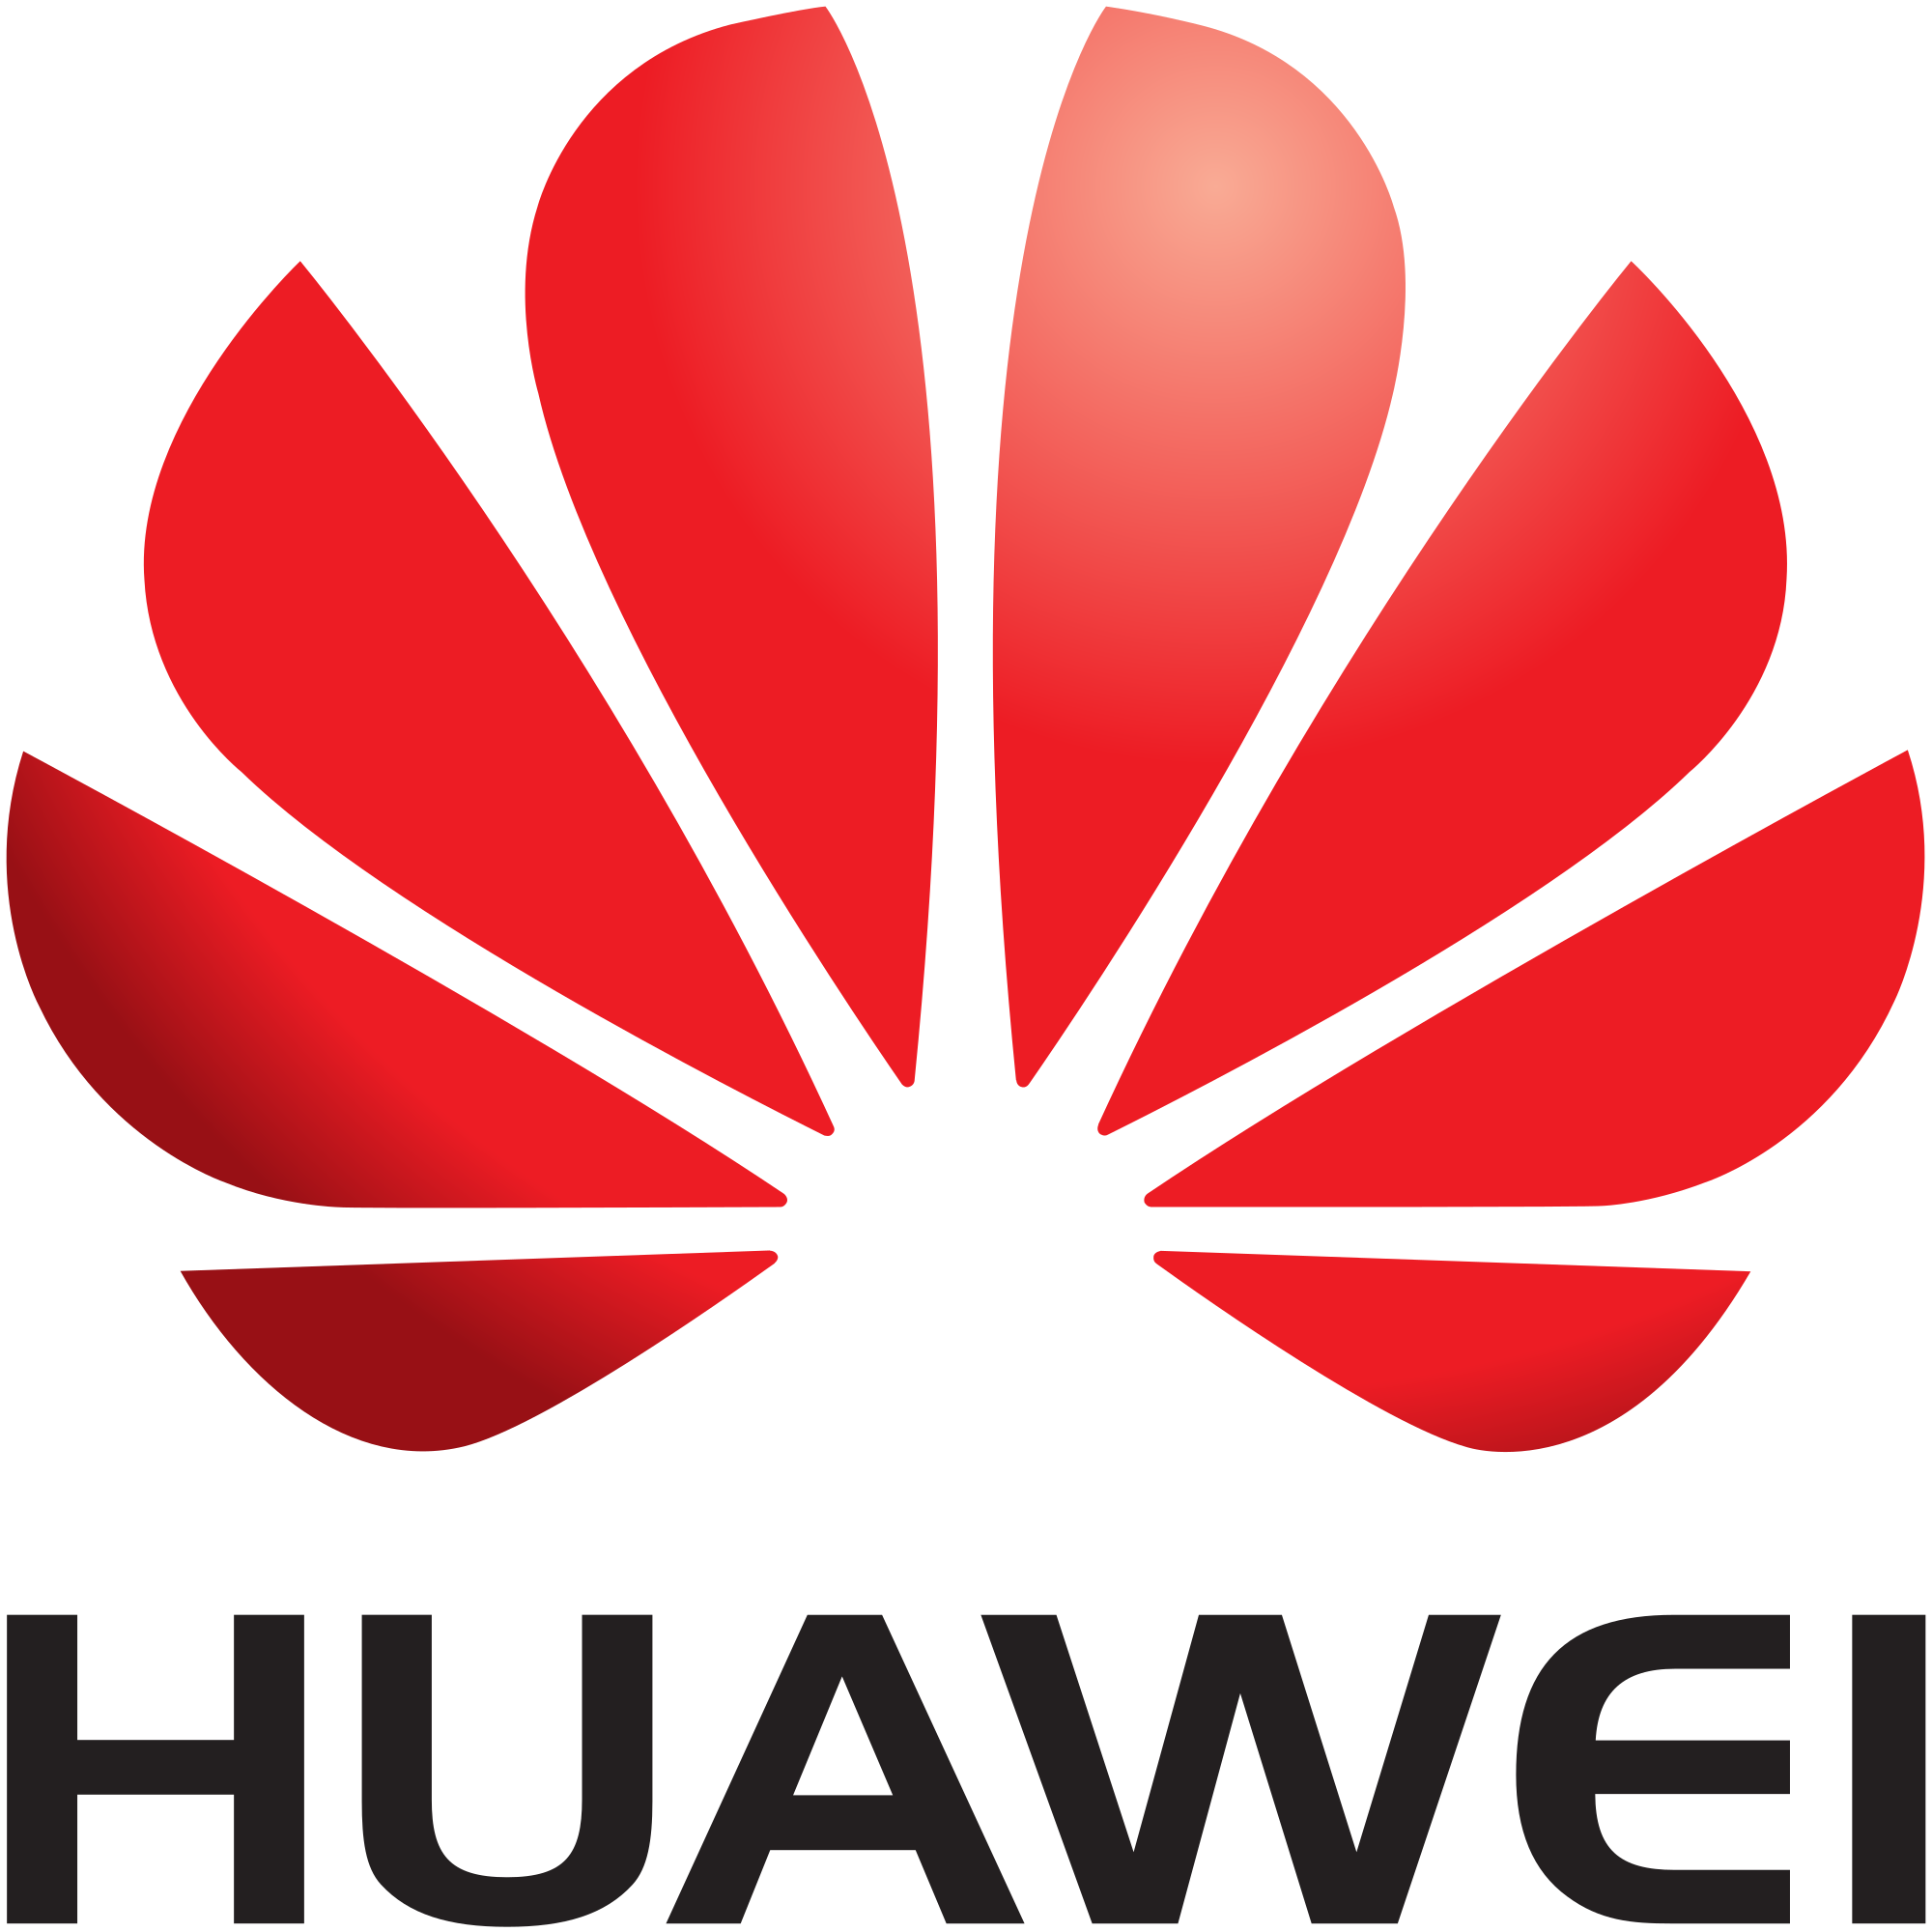 huawei hardware it segundamano